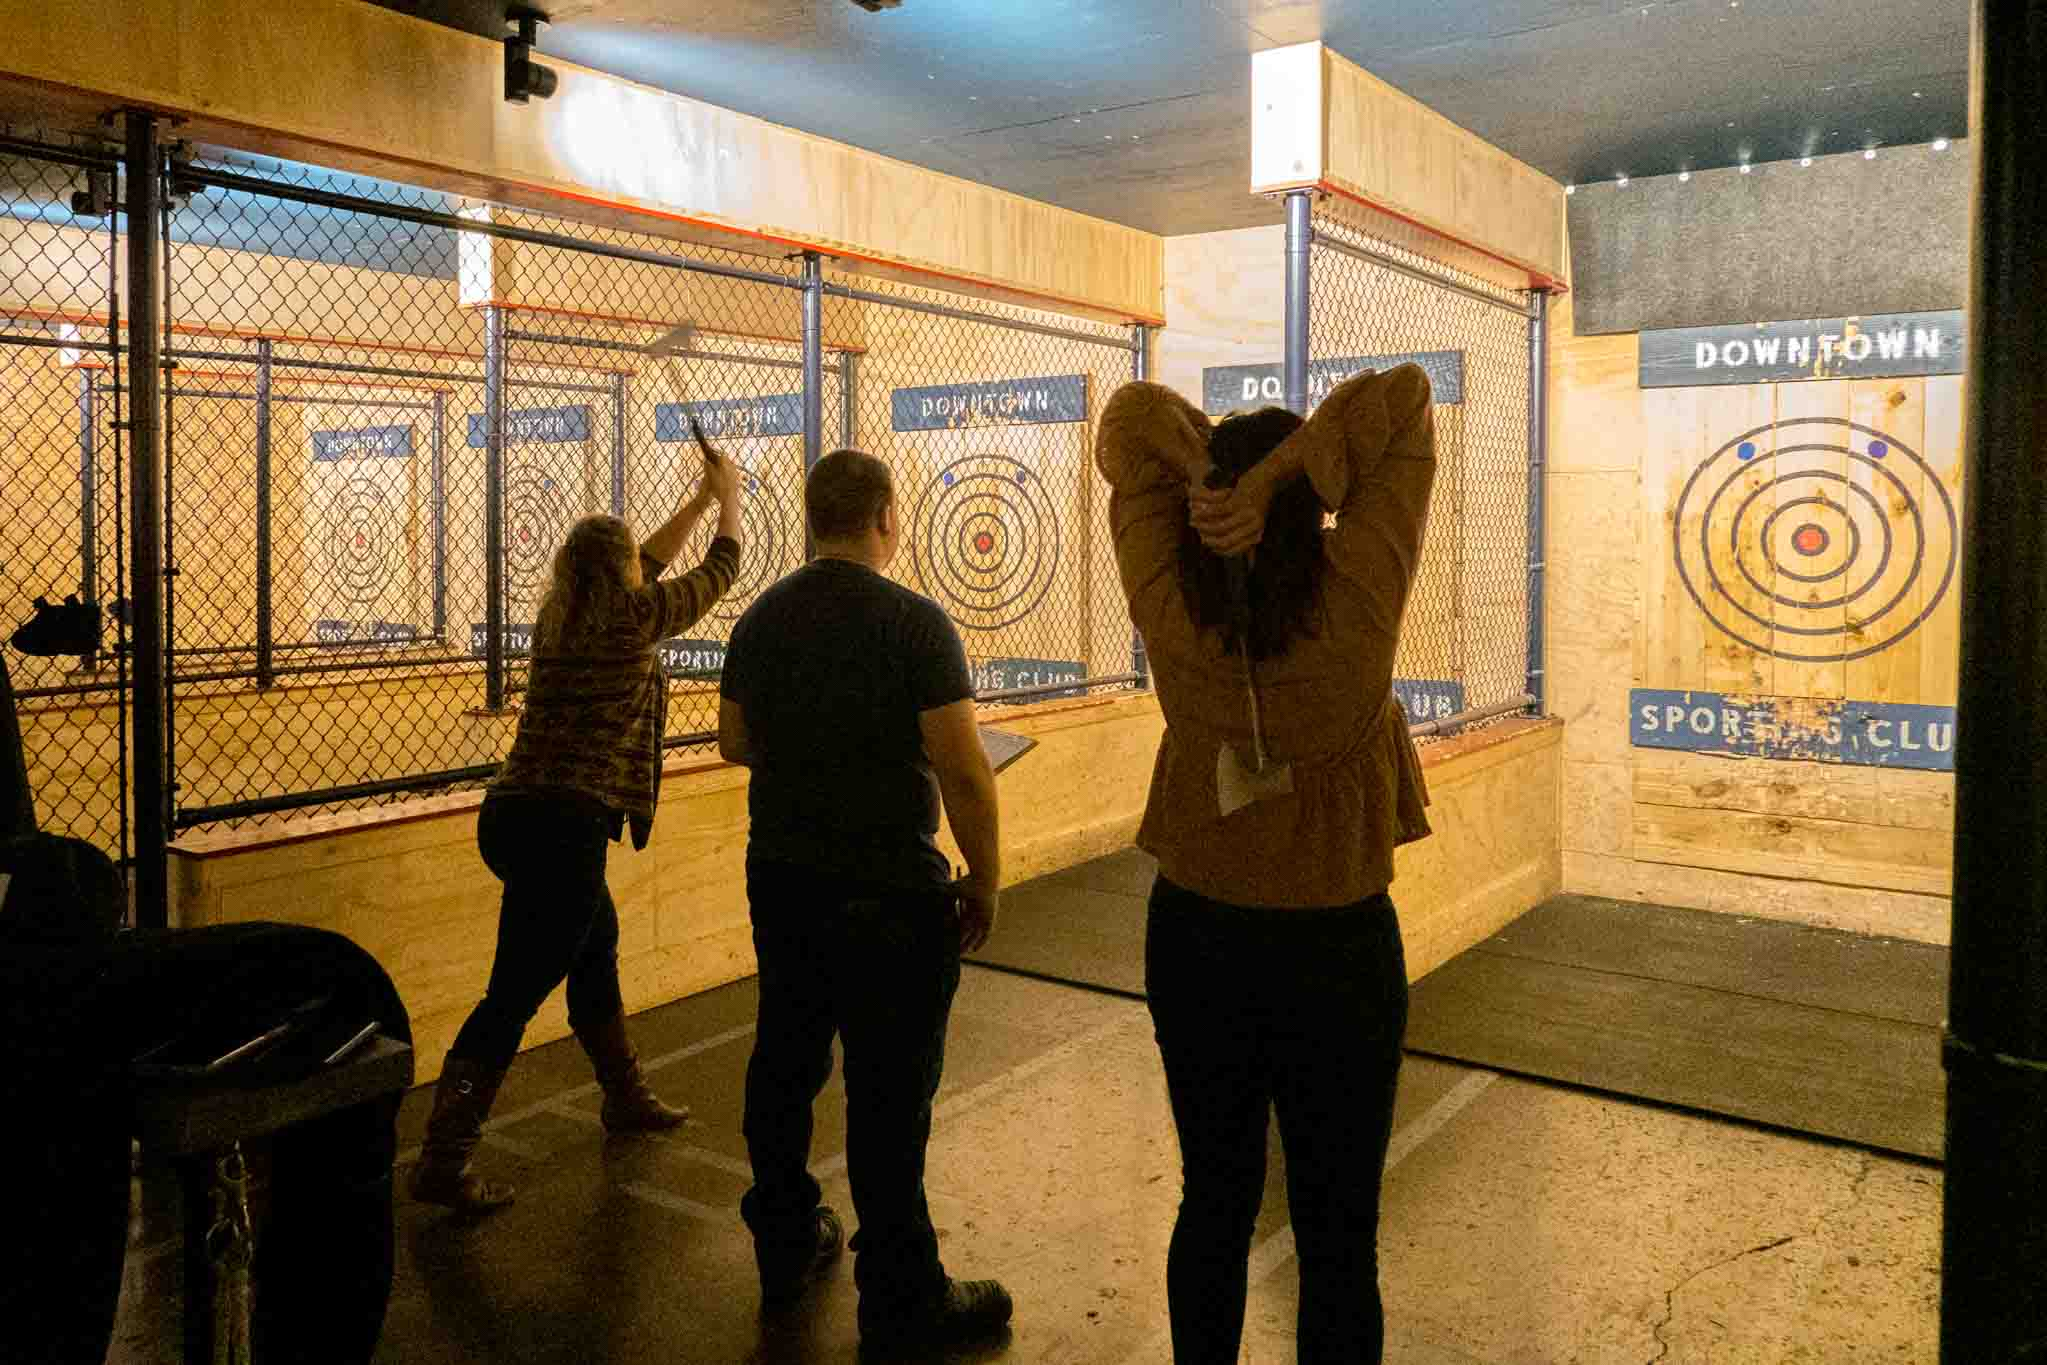 Two people throwing axes at targets on a wall